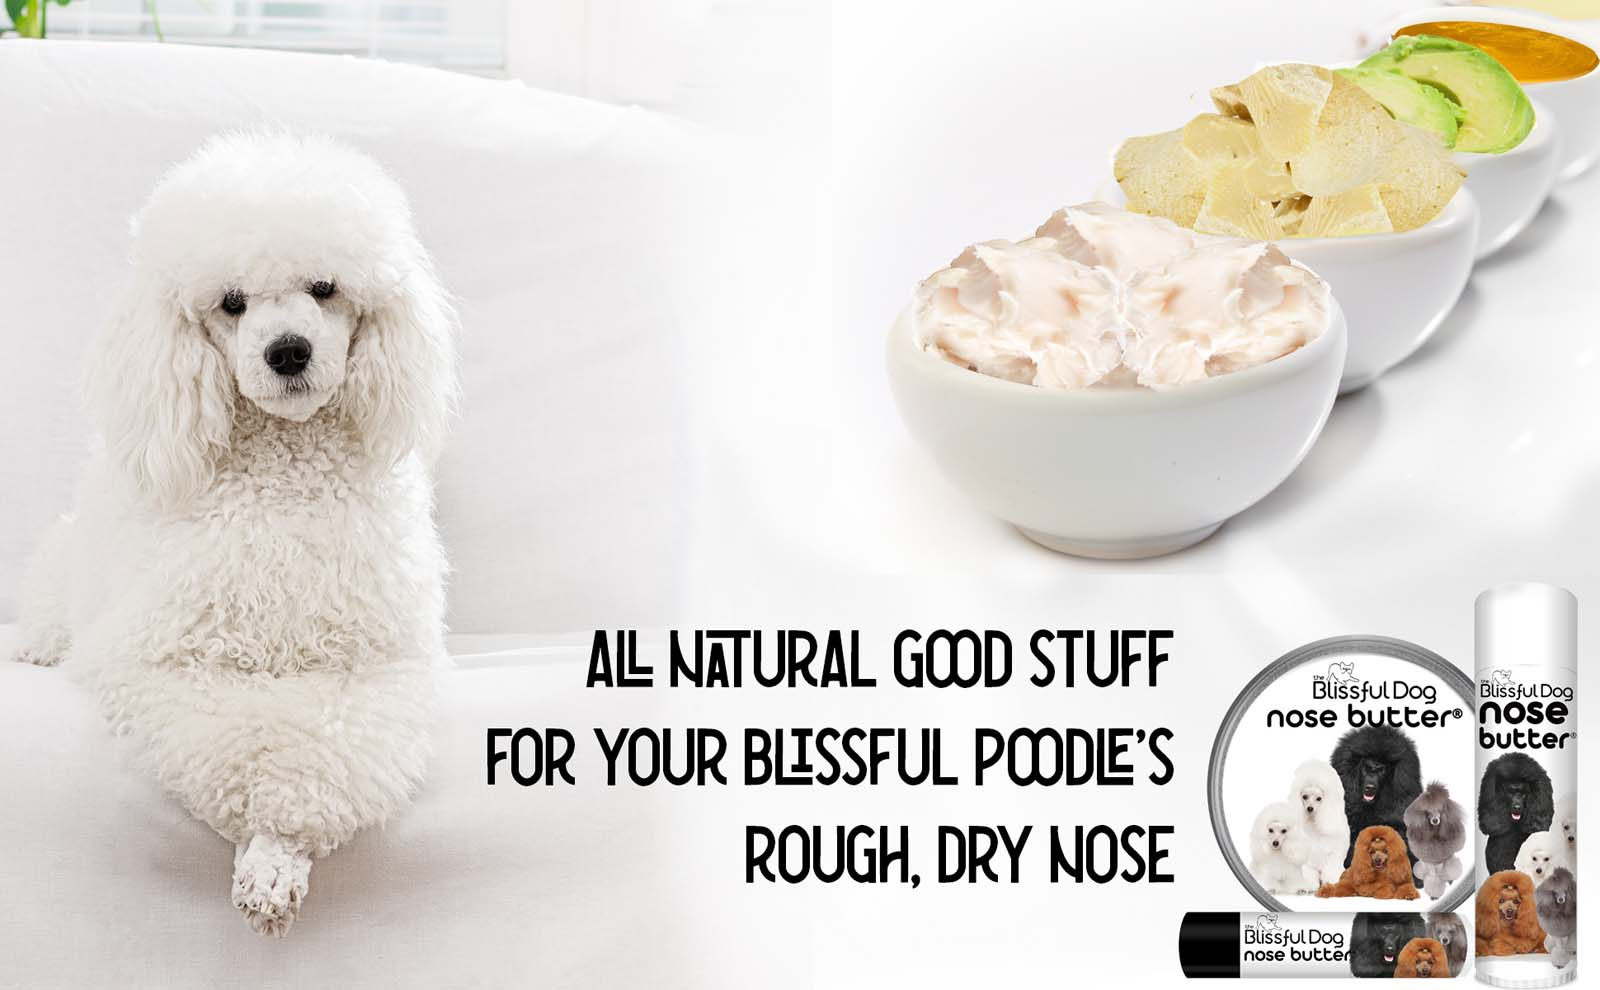 poodle has dry nose